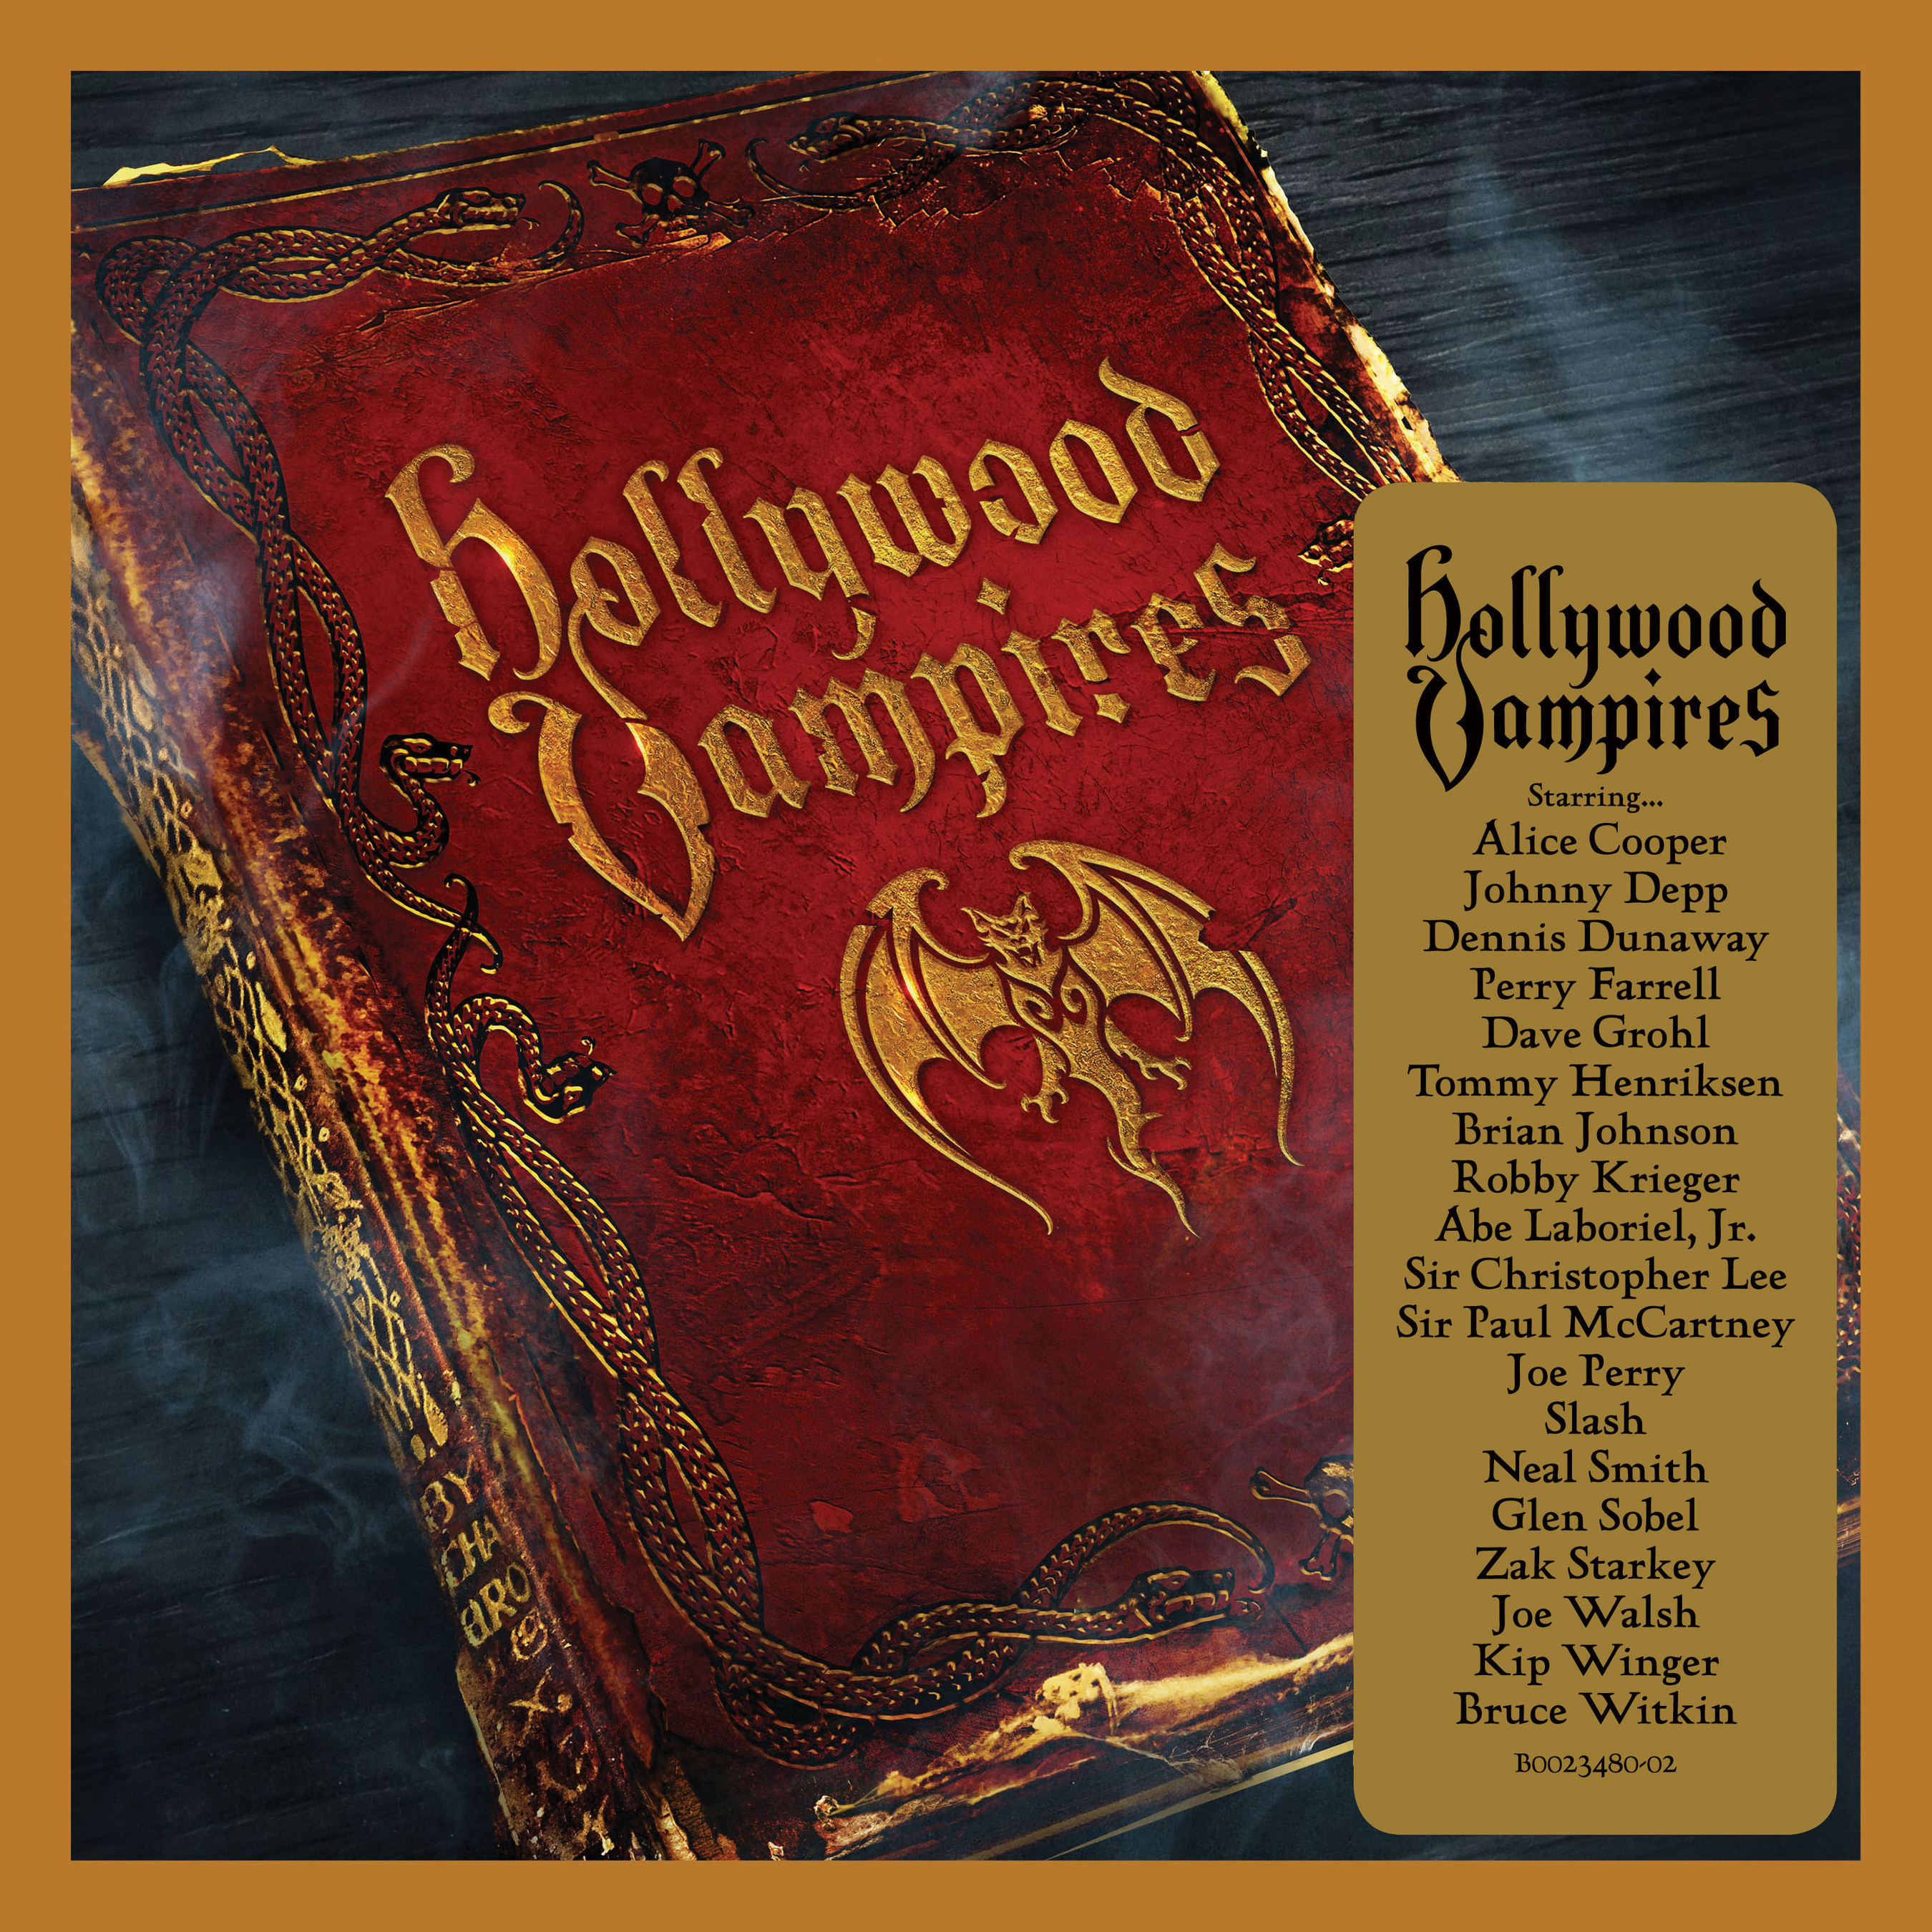 """The Hollywood Vampires Rise Again -Alice Cooper, Johnny Depp, Joe Perry and friends - First Television Debut At The GRAMMY Awards(R), Feb 15 -New Deluxe Digital Album Available Feb 12 Featuring A New Original Track """"Bad As I Am"""" and 2 Previously Unreleased/Bonus Tracks"""